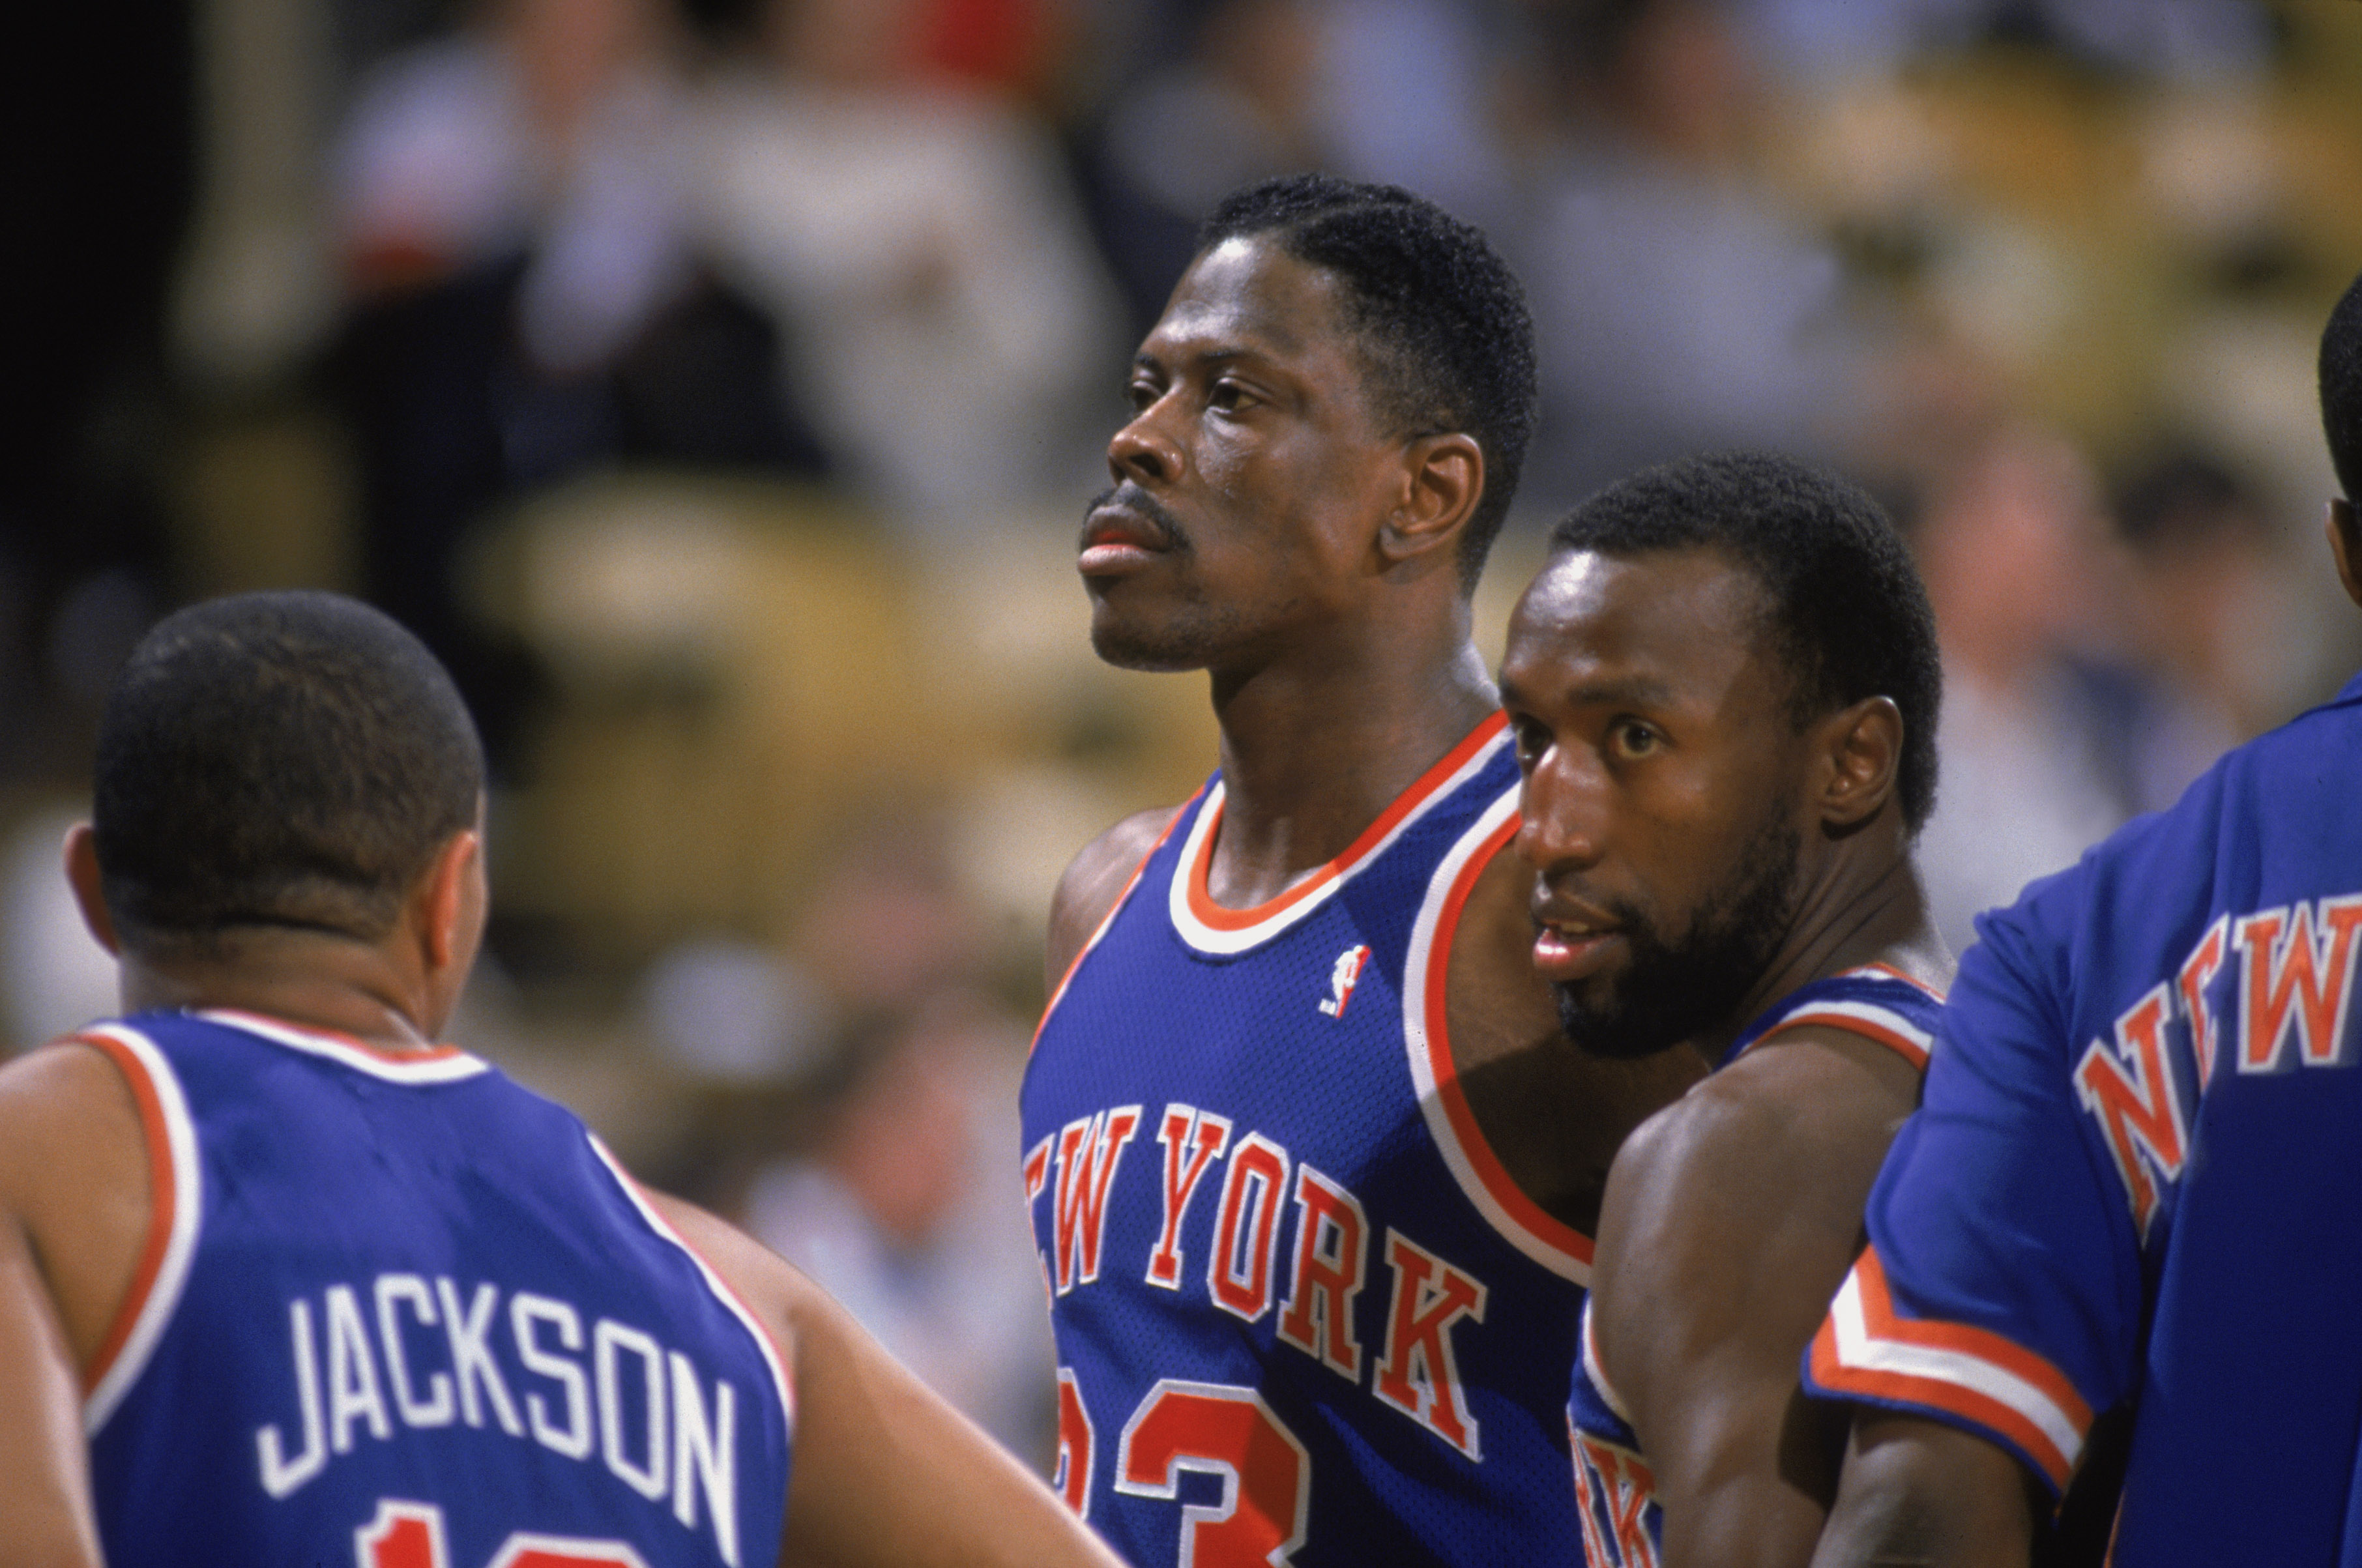 Nba Draft Patrick Ewing And The New York Knicks 10